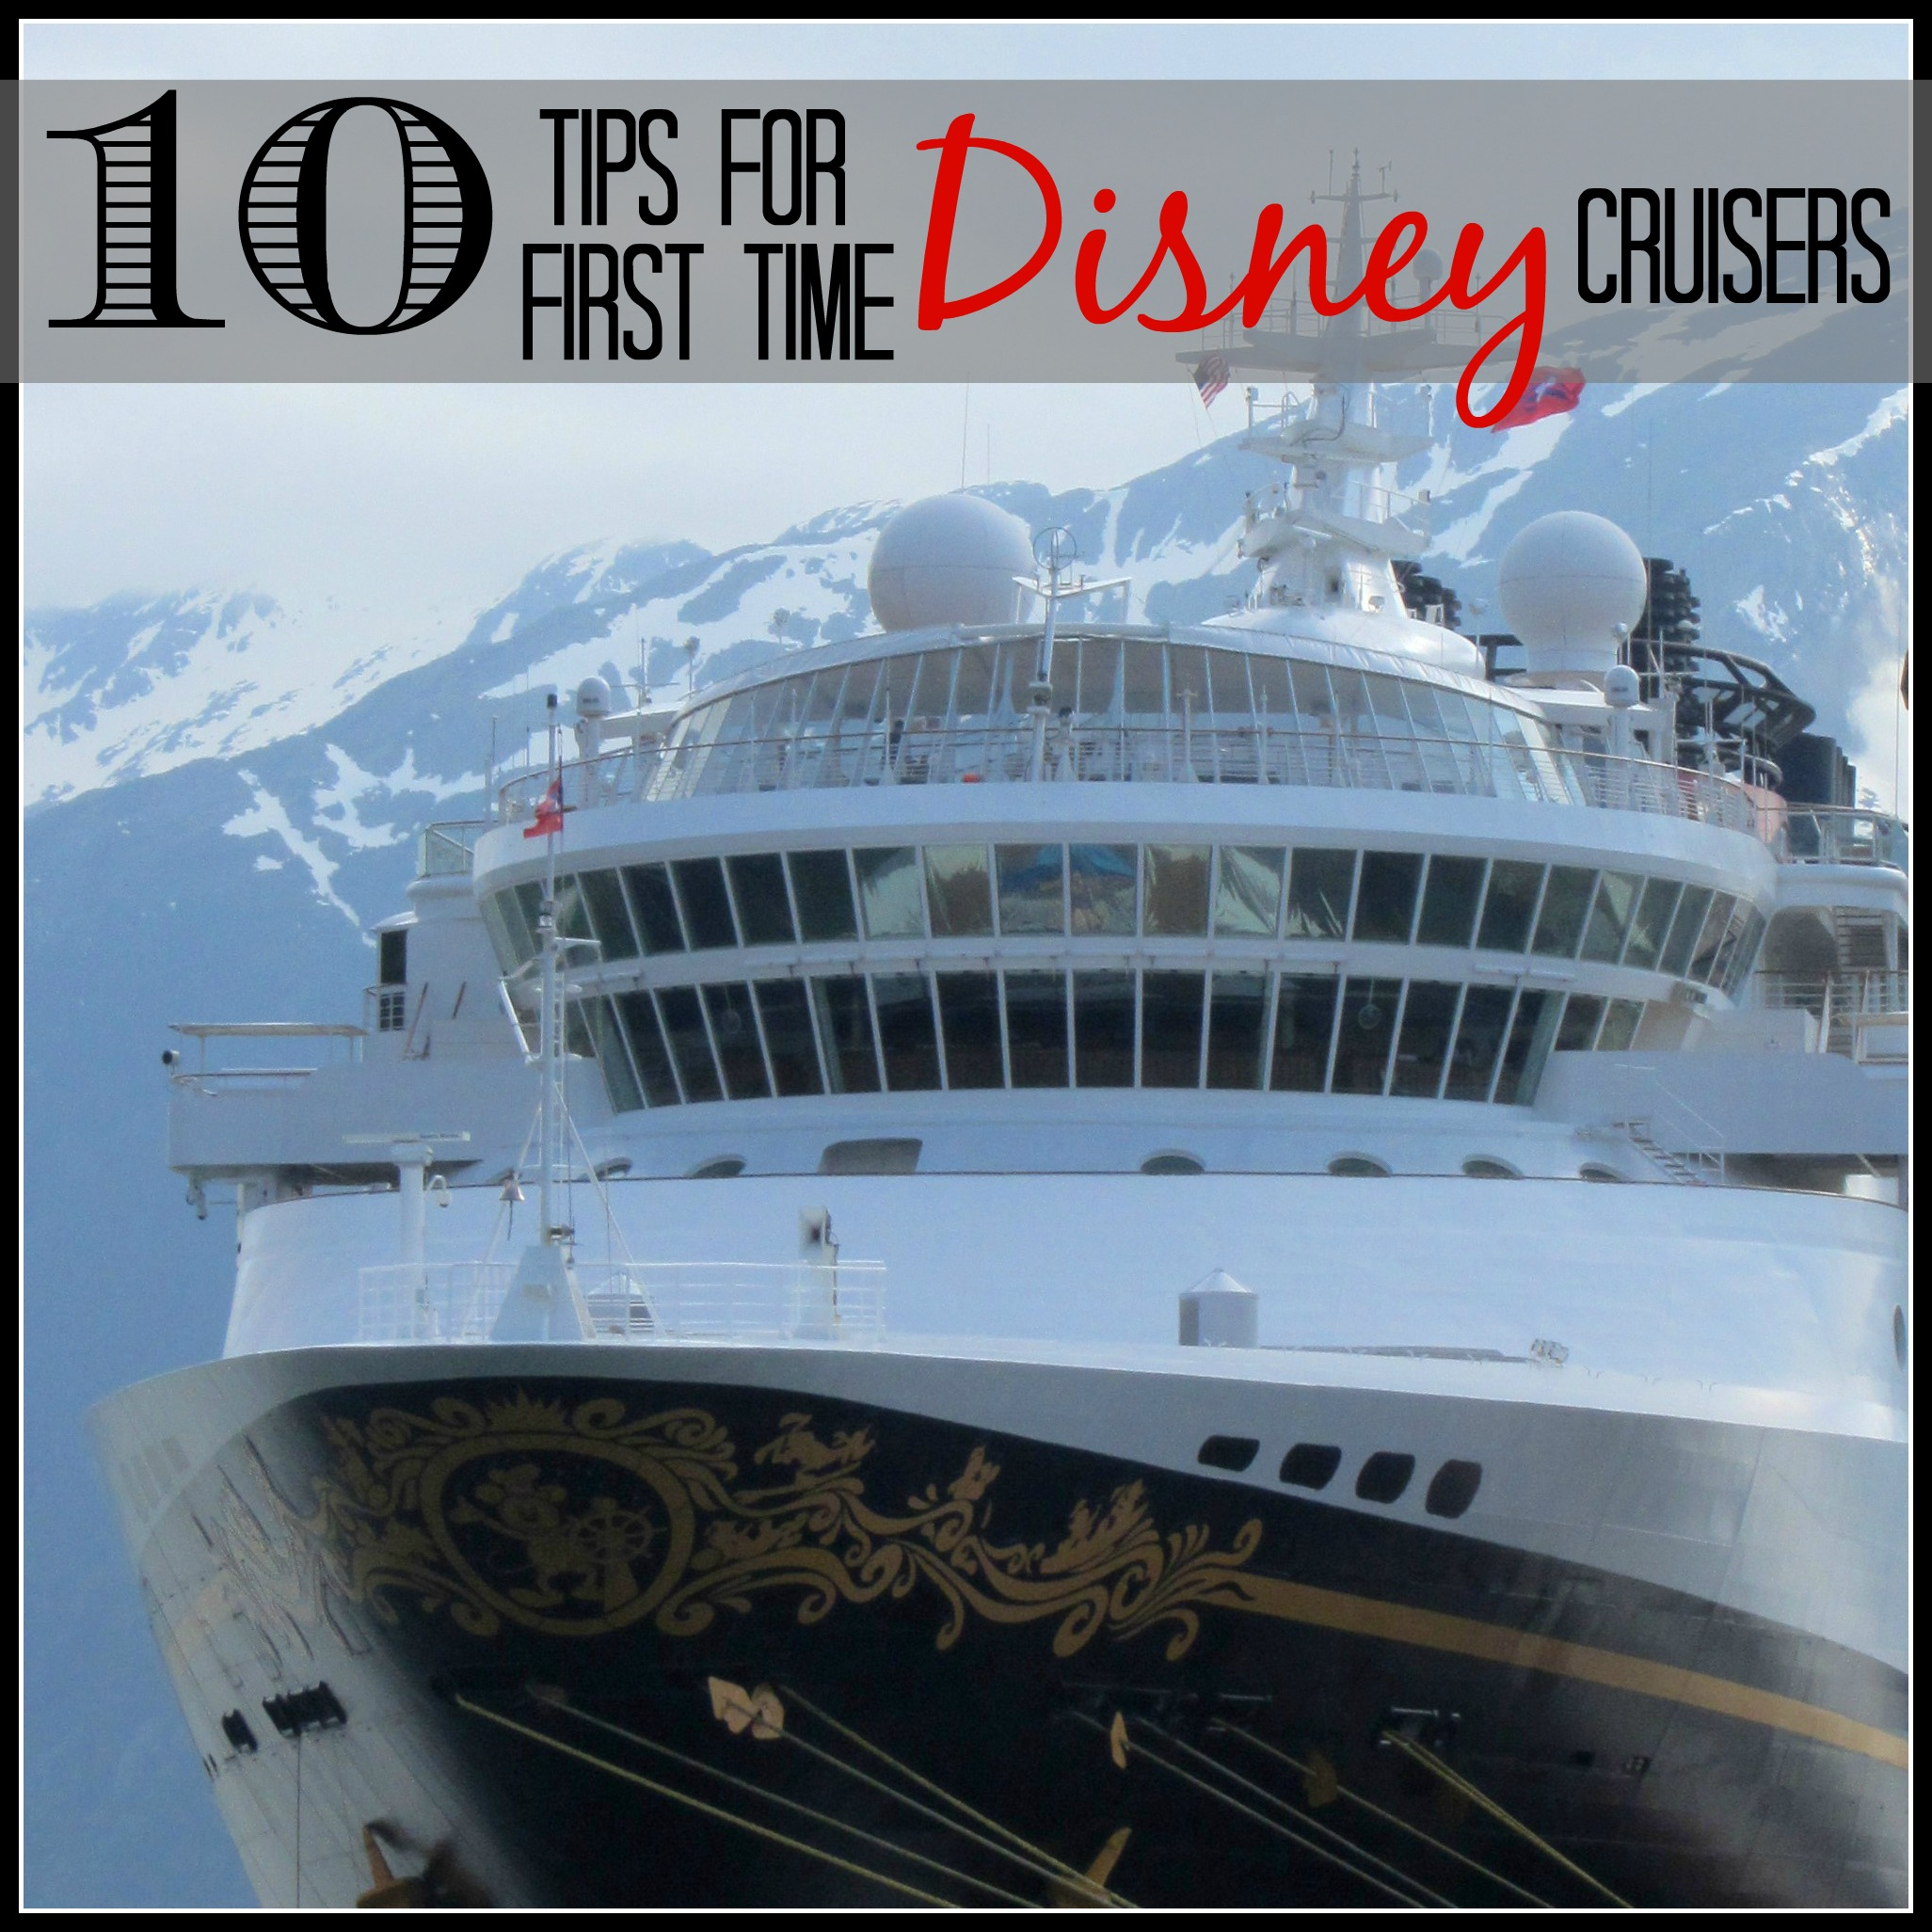 10 Tips for First Time Disney Cruisers - My Big Fat Happy Life